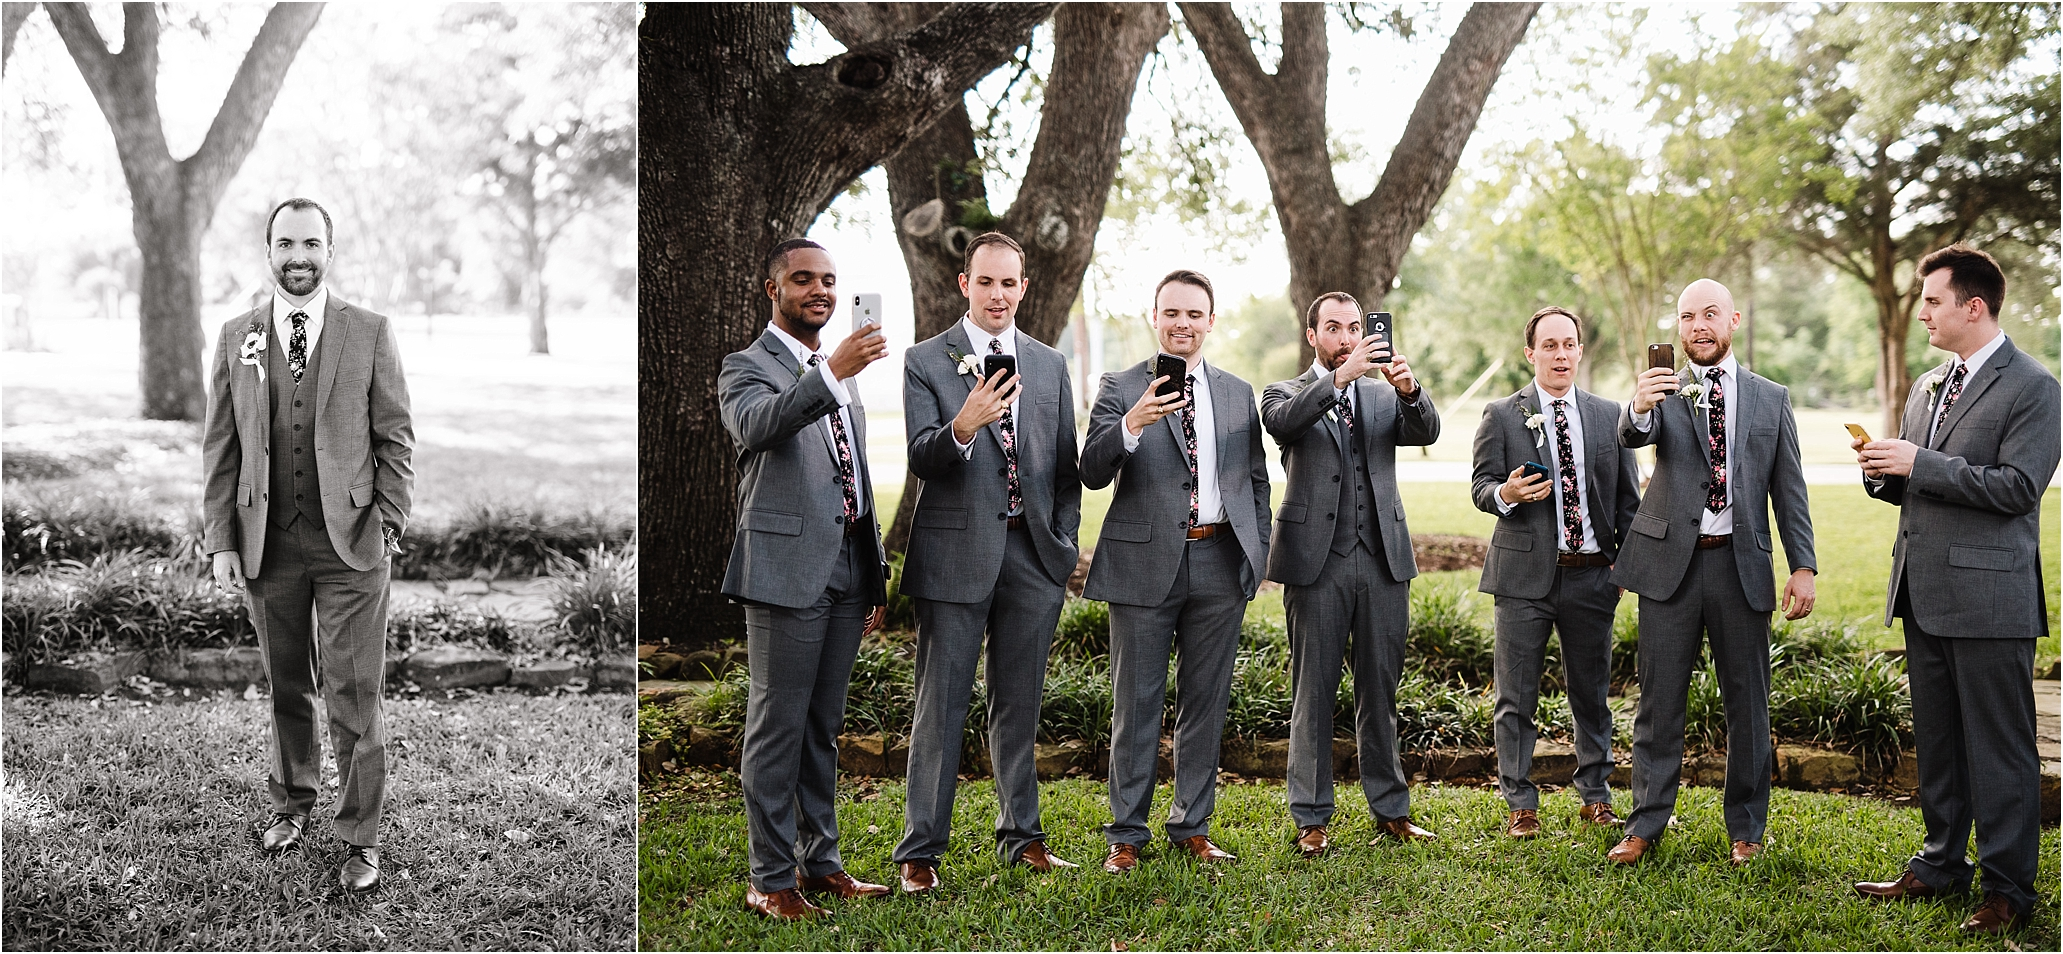 PattisonHouse_TexasWeddingPhotographer_CarlyCrockett&MattBrownWedding_0089.jpg